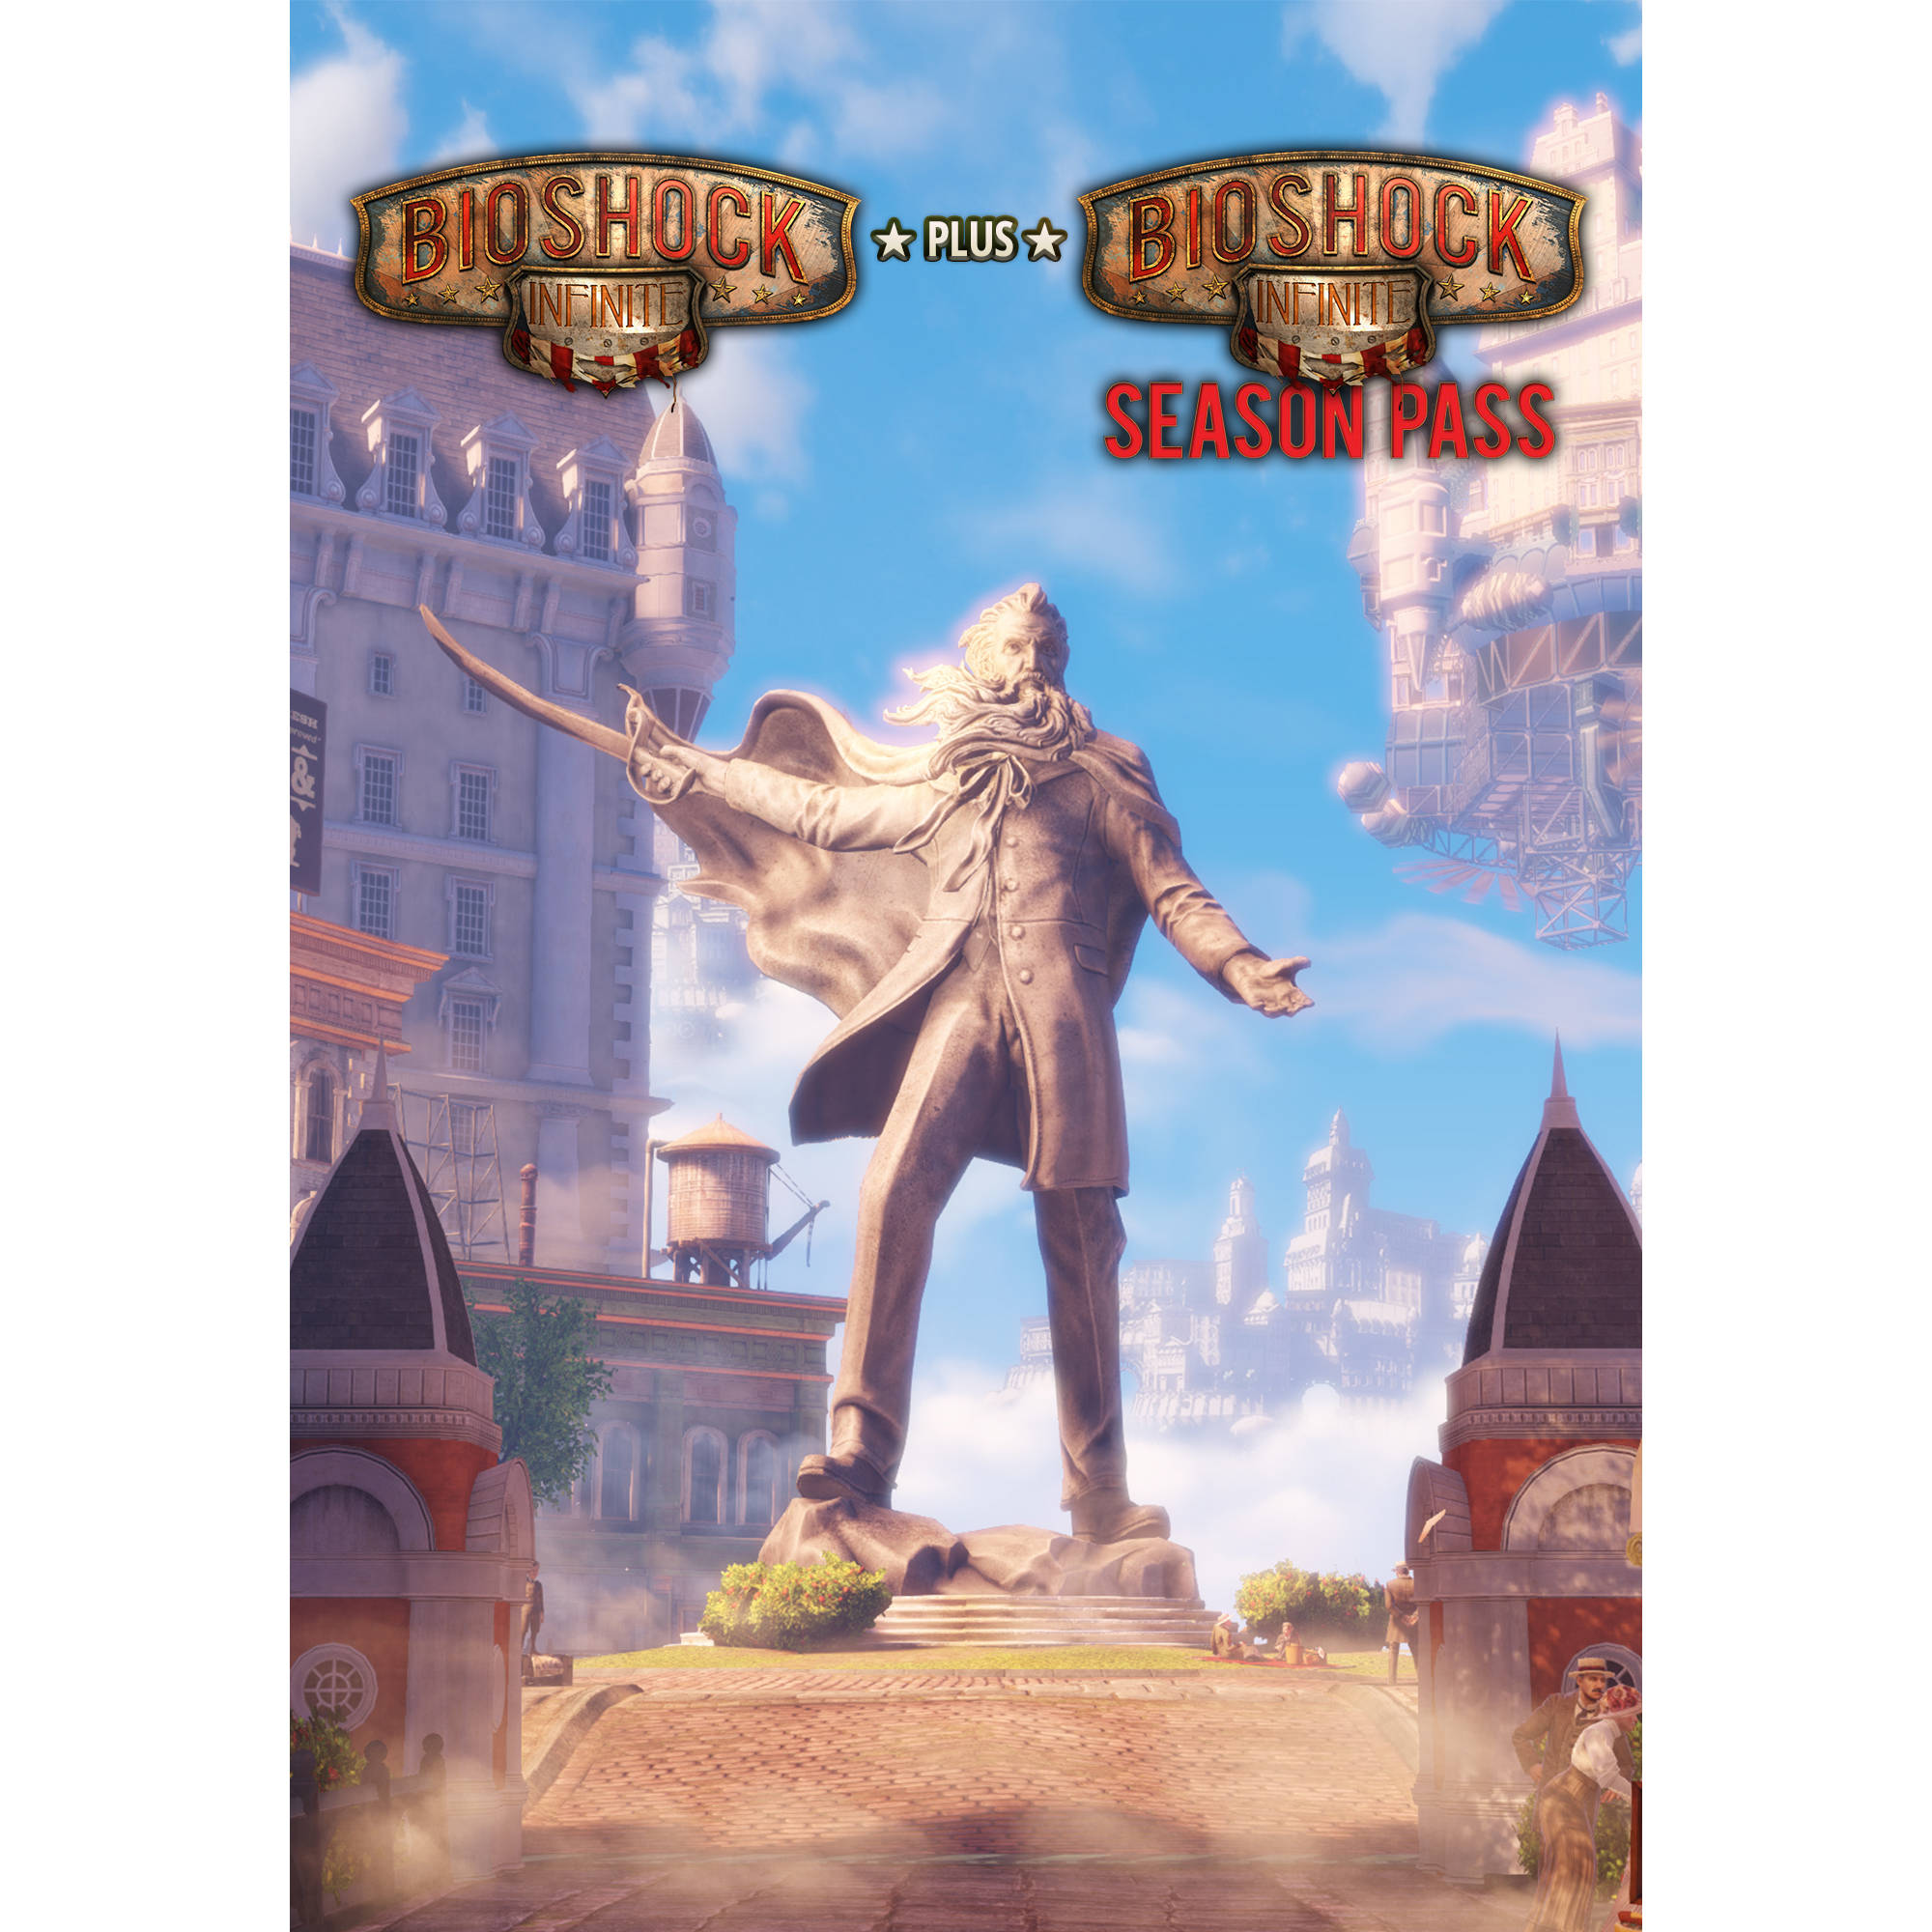 Image of BioShock Infinite and BioShock Infinite Season Pass Bundle (PC) (Digital Download)